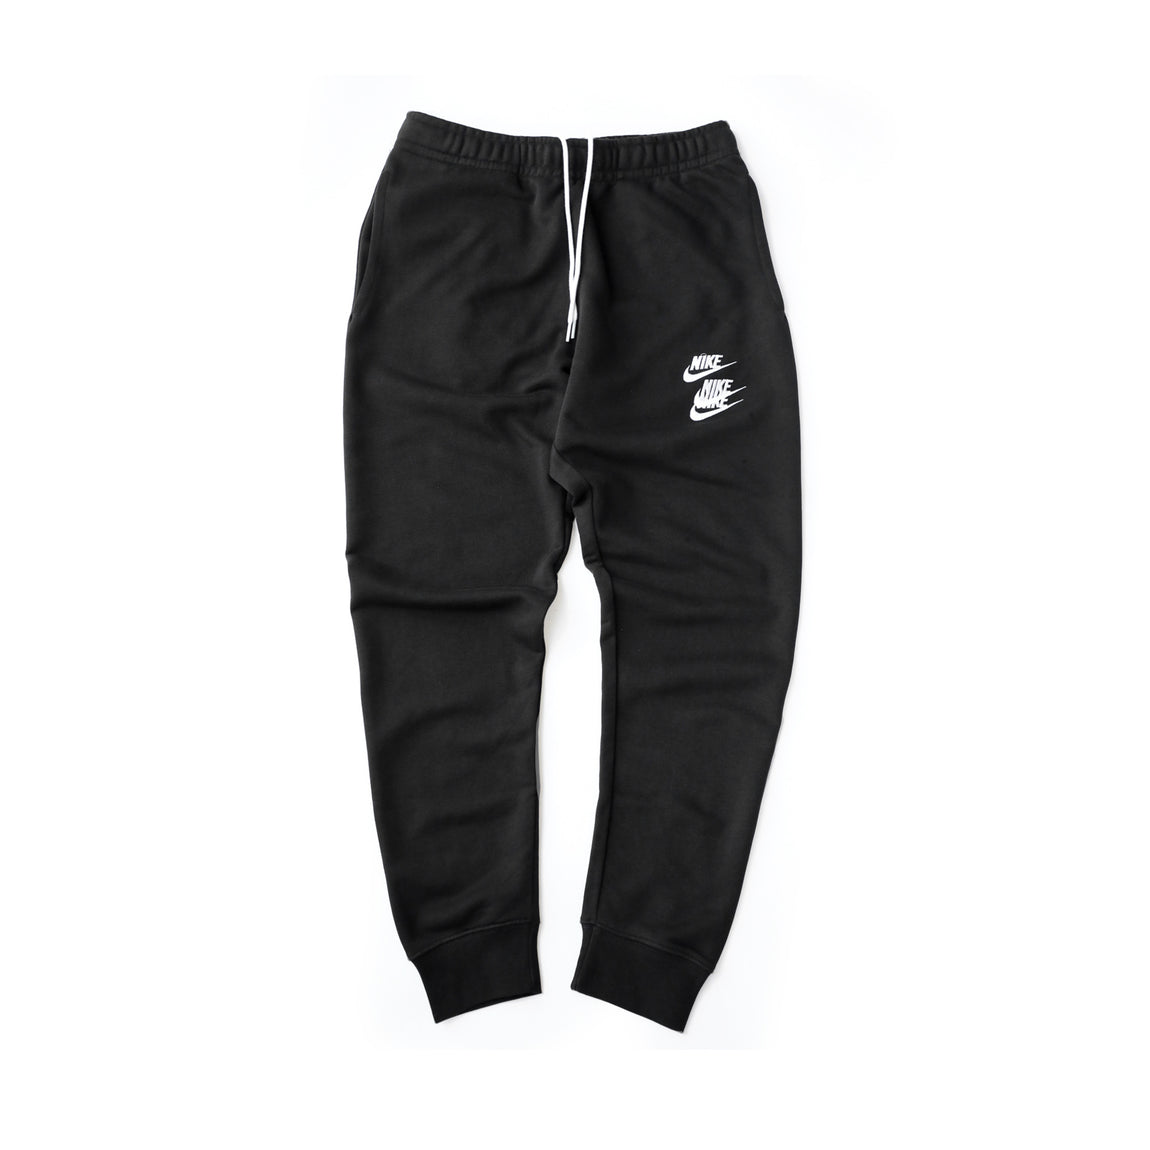 Nike Sportswear French Terry Stacked Logo Pants (Black) - Nike Sportswear French Terry Stacked Logo Pants (Black) -